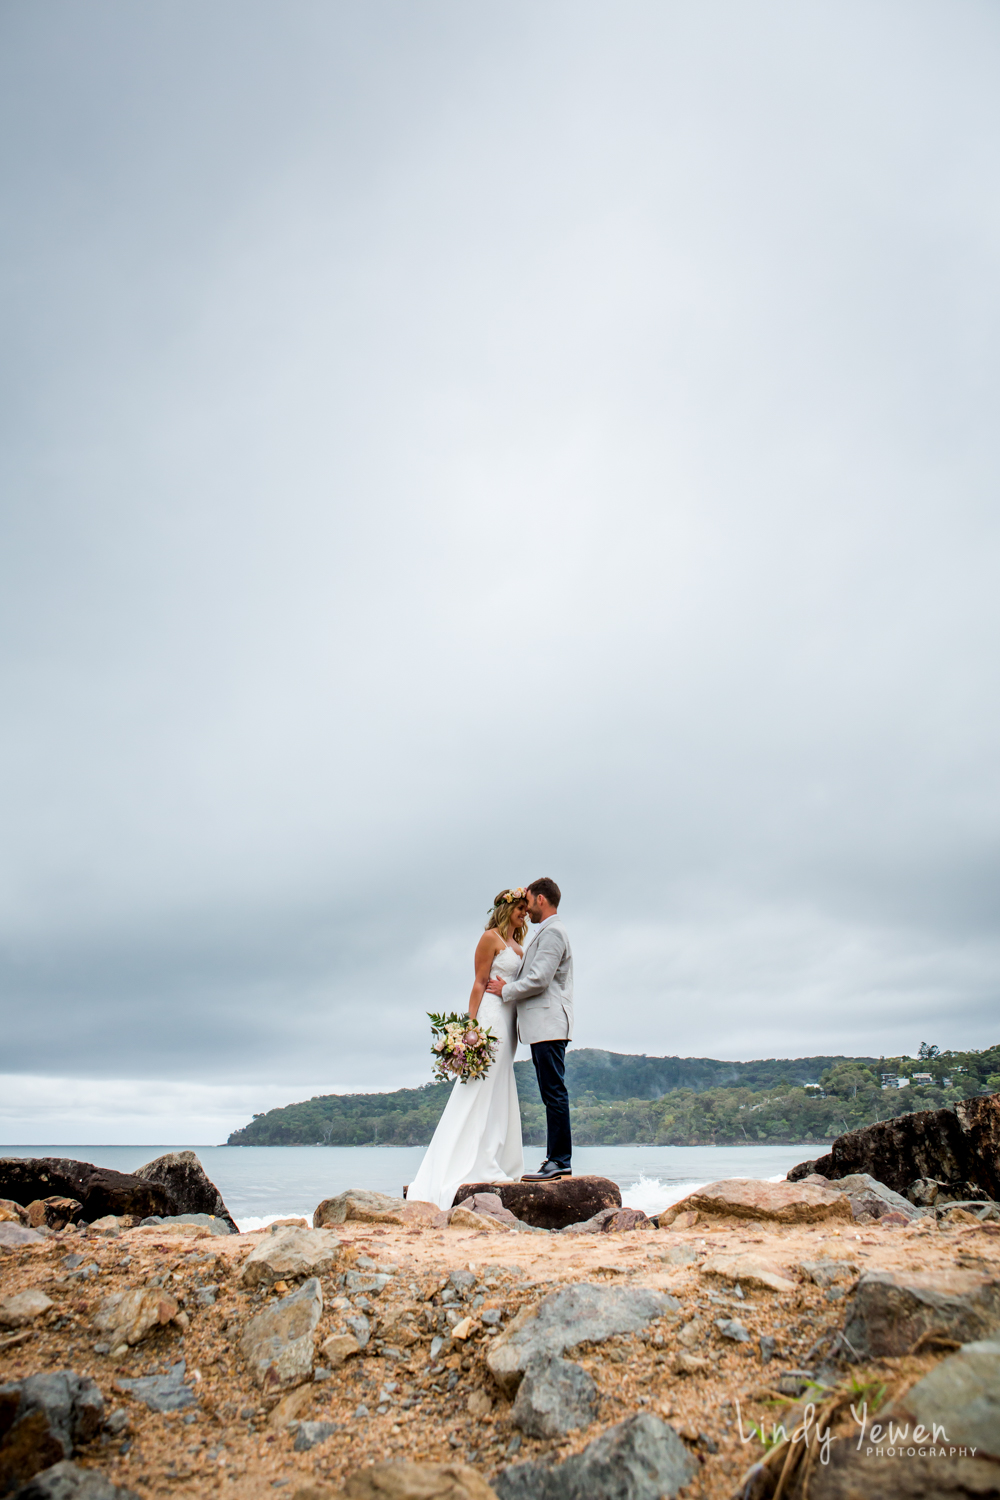 Noosa-Wedding-Photographer-Jess-Tyson 292.jpg